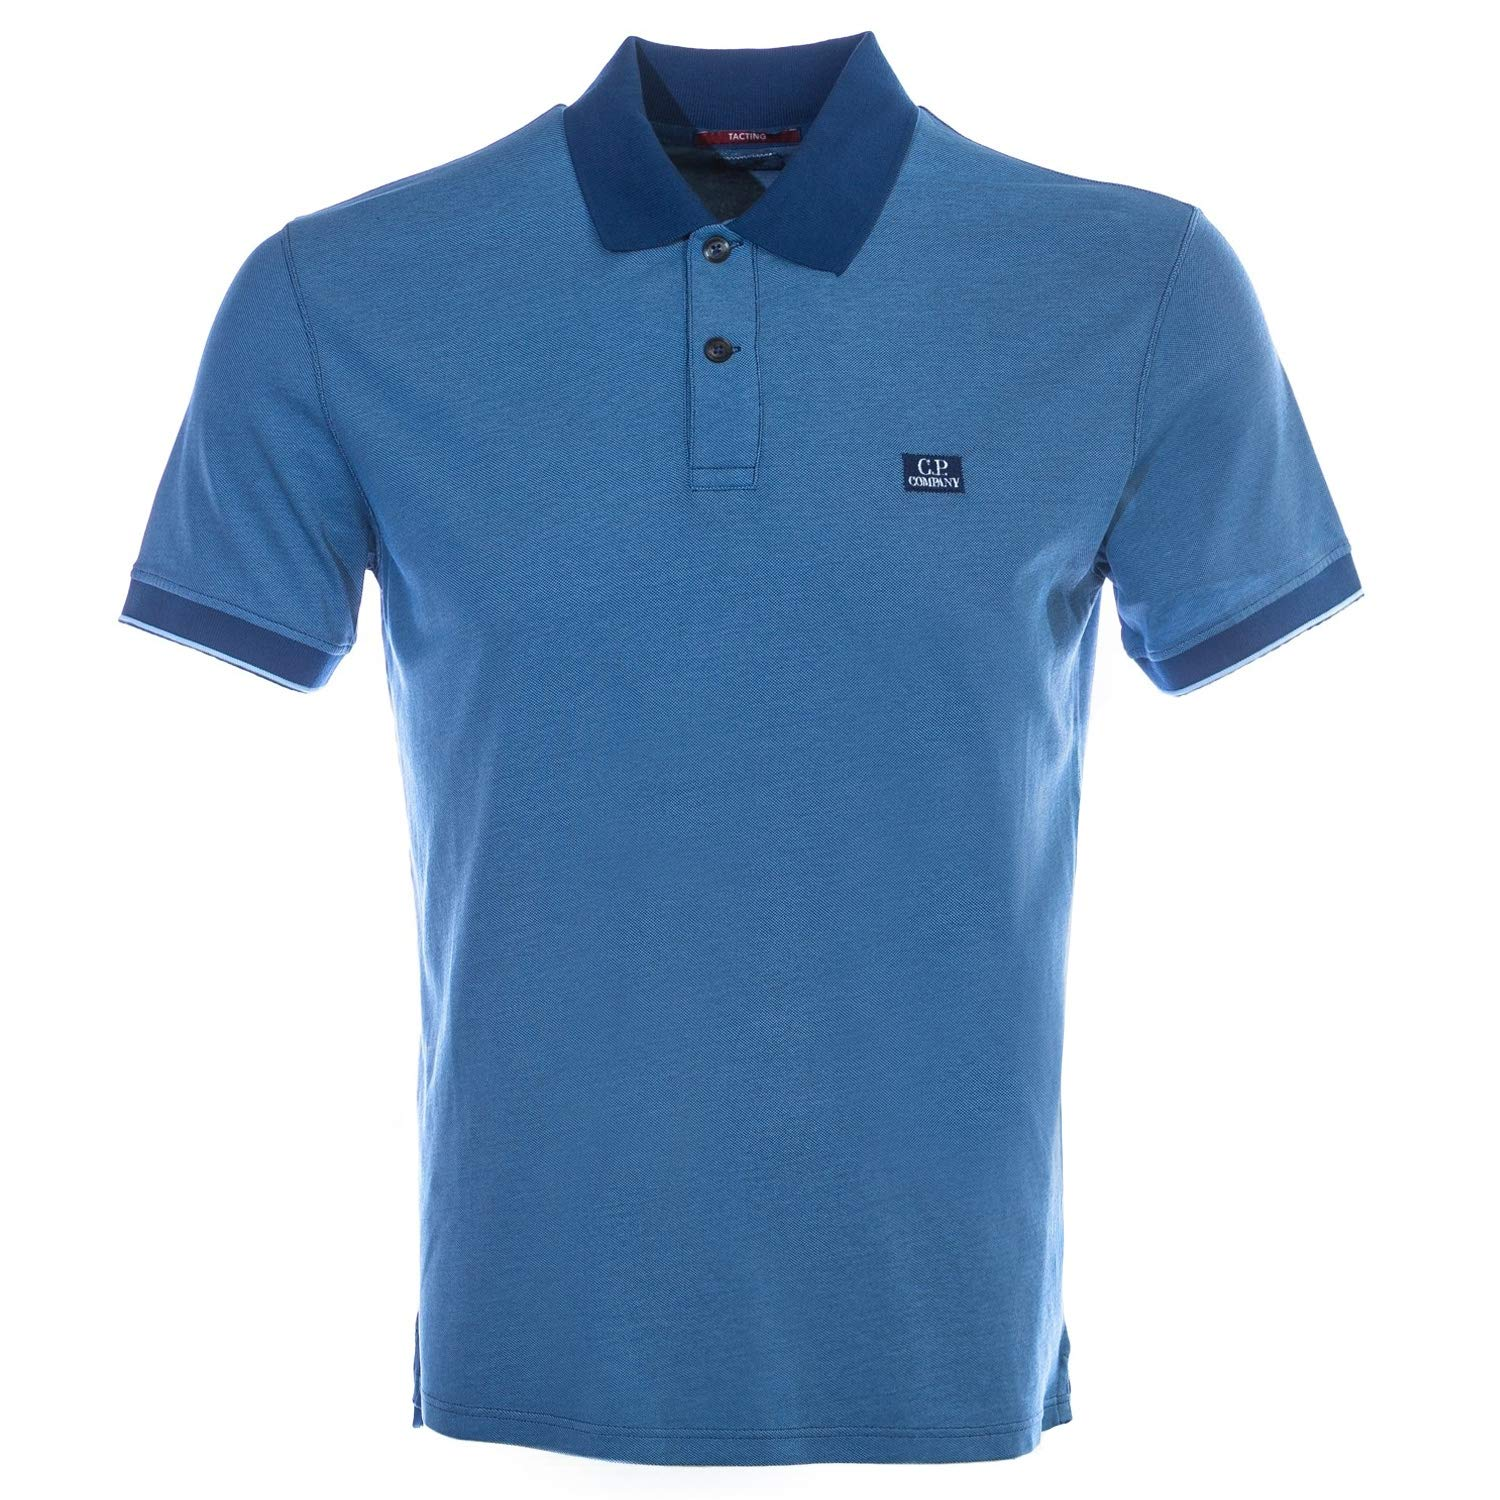 CP Company Tacting Polo Shirt in bleu